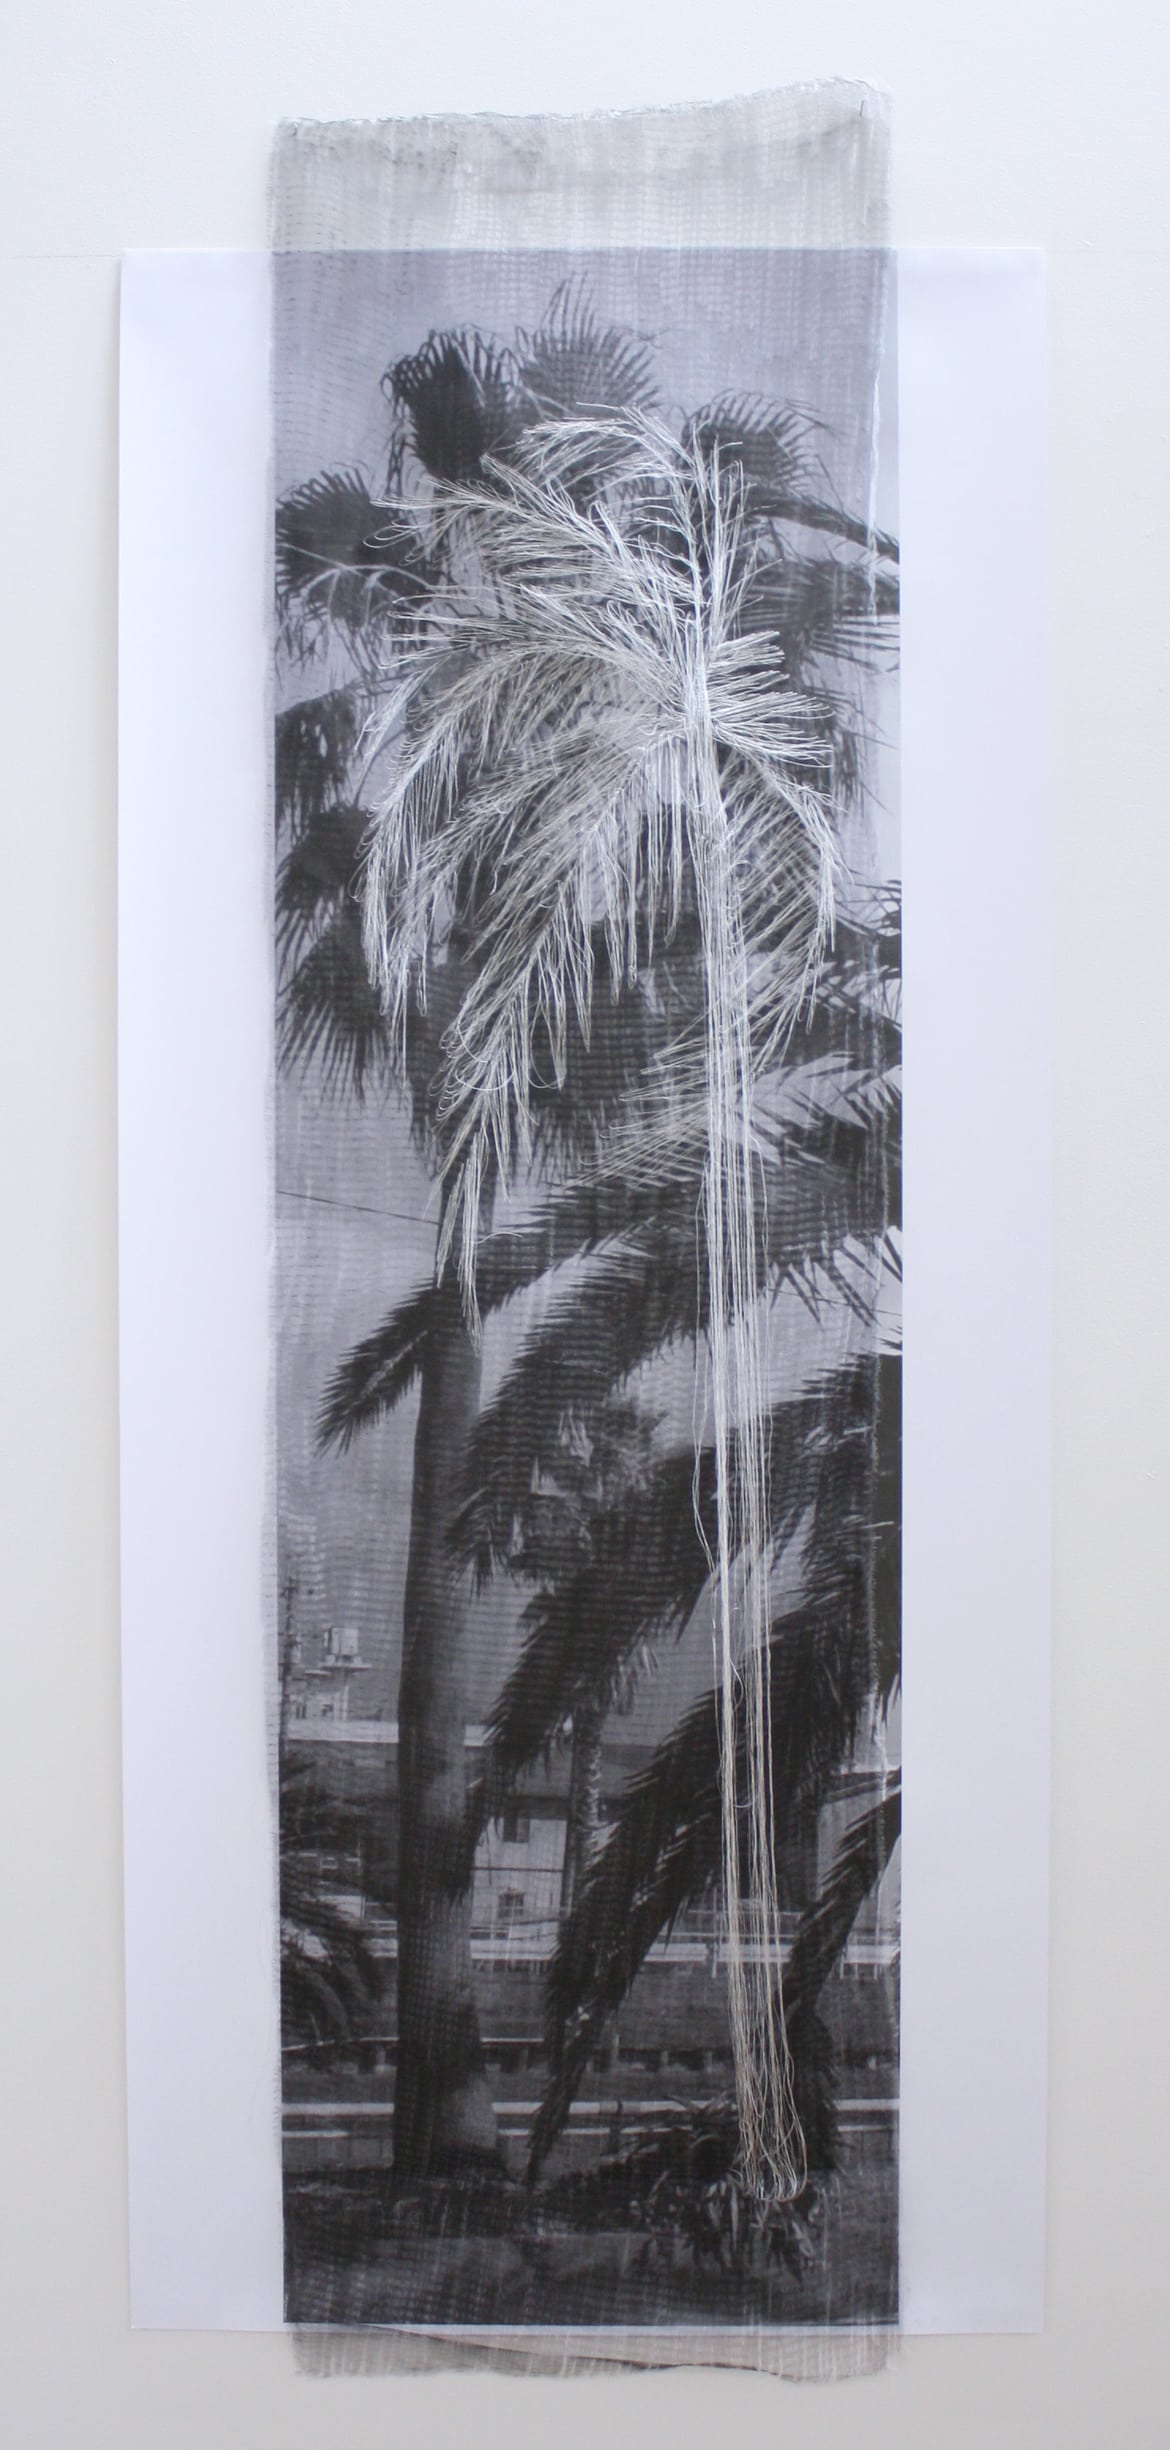 'They Were Still Alive in M City and N City', 2012, print on cotton, Japanese silk thread, German synthetic cloth, 145 x 60 cm